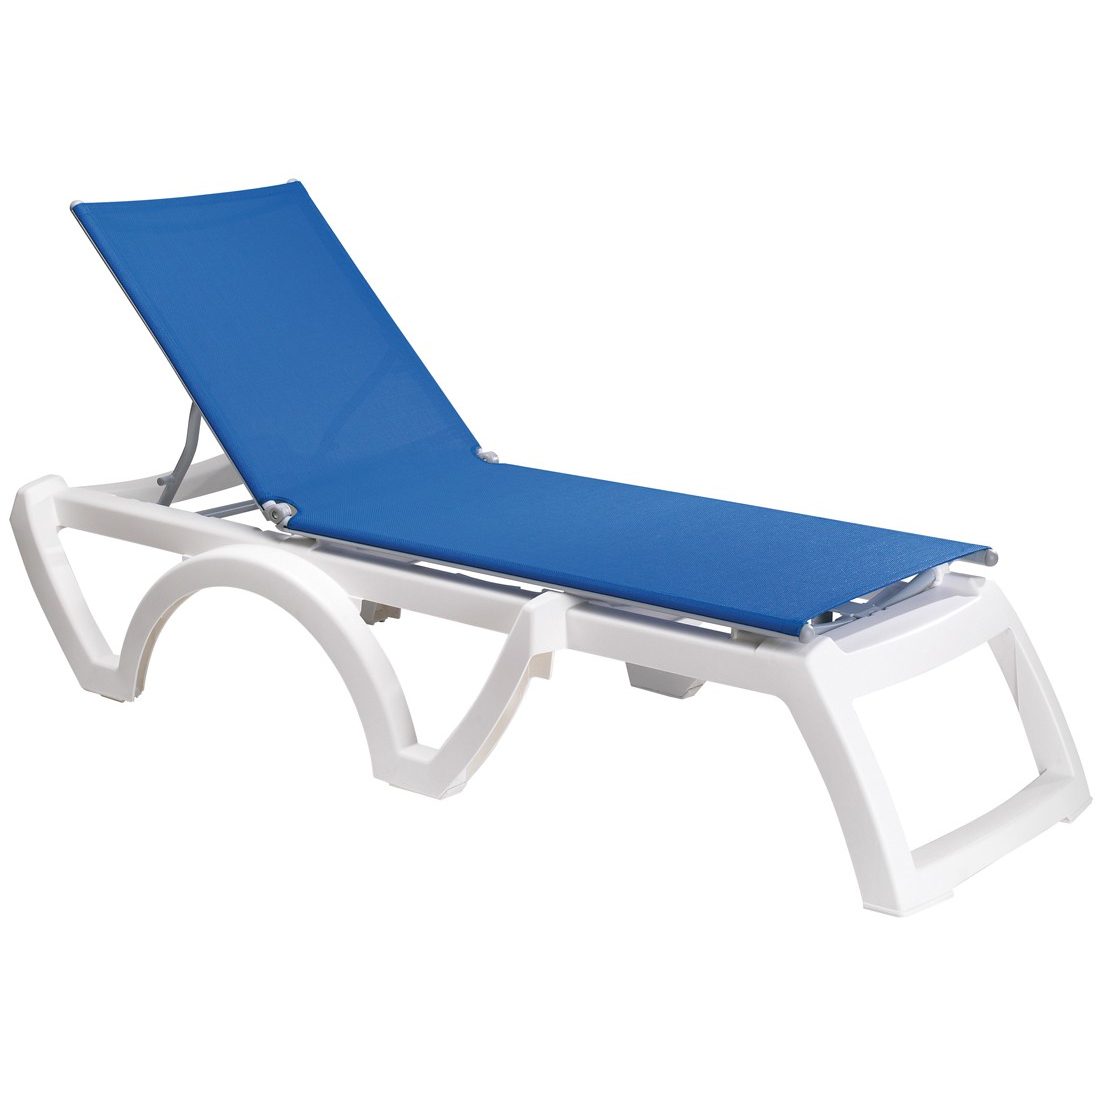 Grosfillex US876006 chaise, outdoor